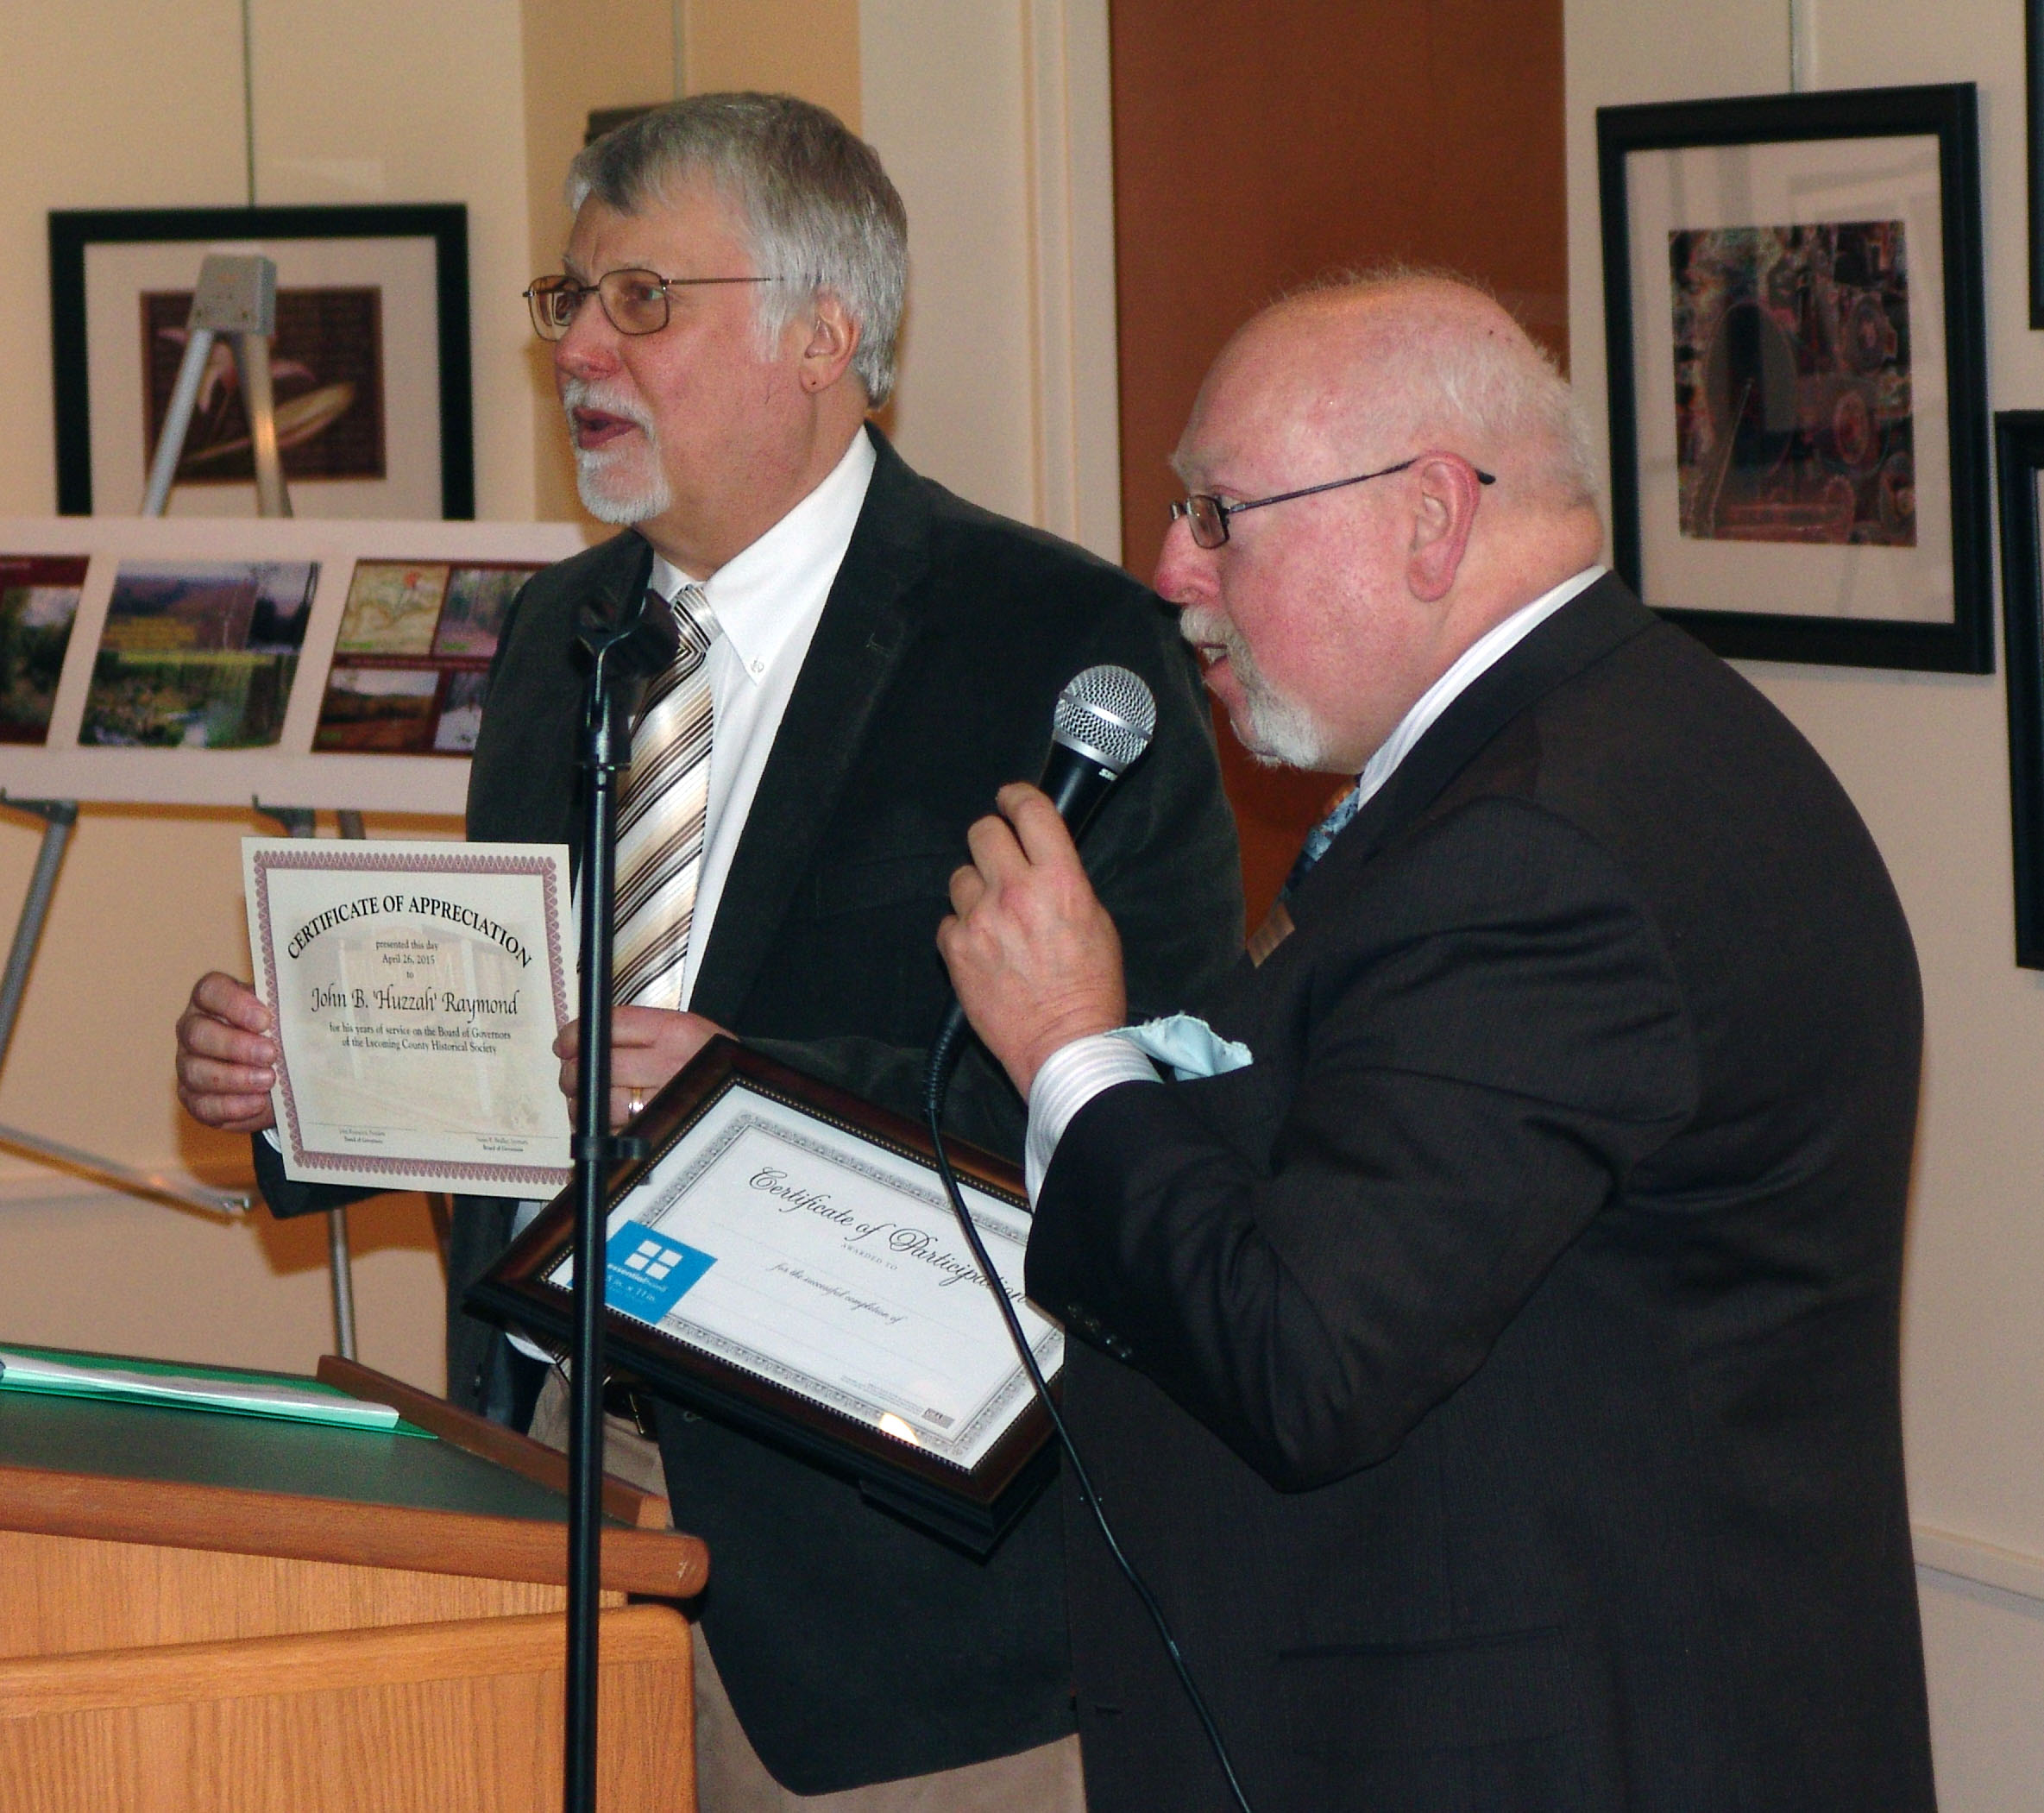 Director Gary Parks presented outgoing Board President John Raymond with a certificate of appreciation.